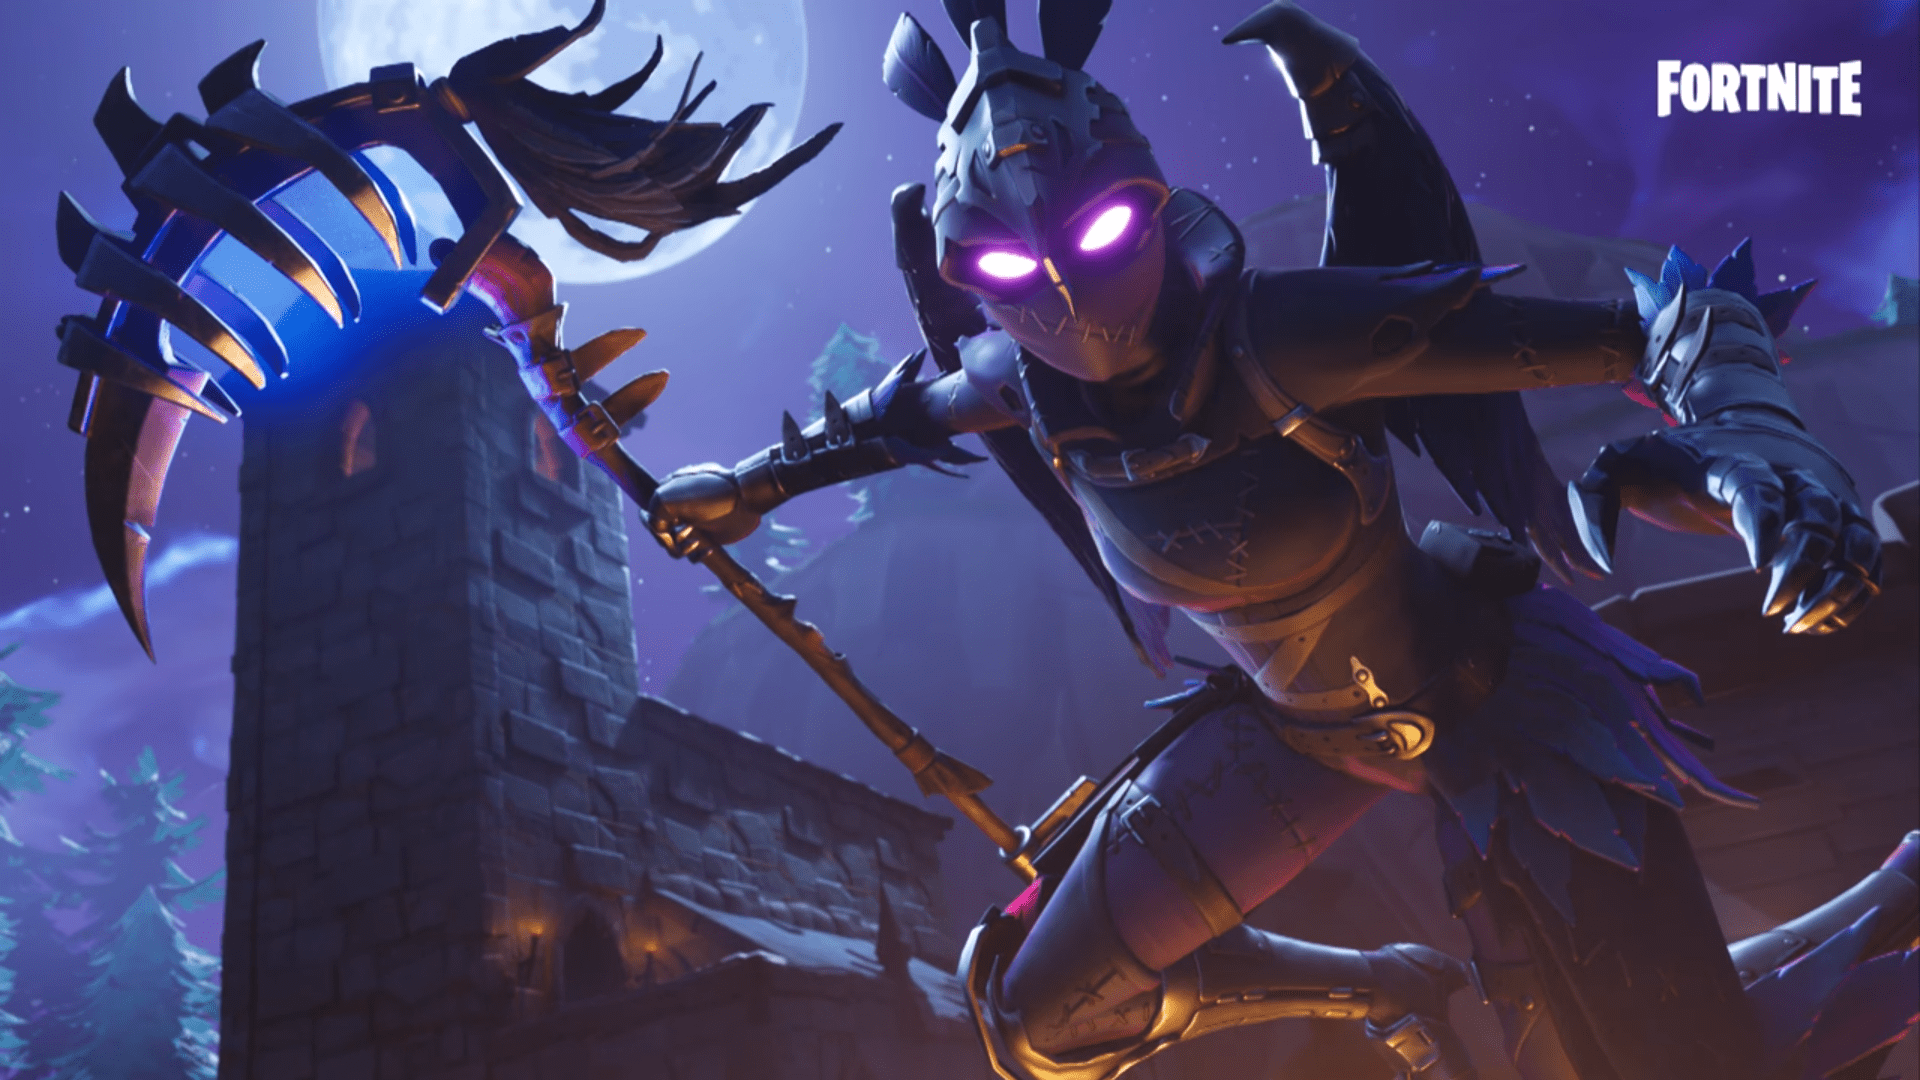 Fortnite Ravage | Outfits - Fortnite Skins